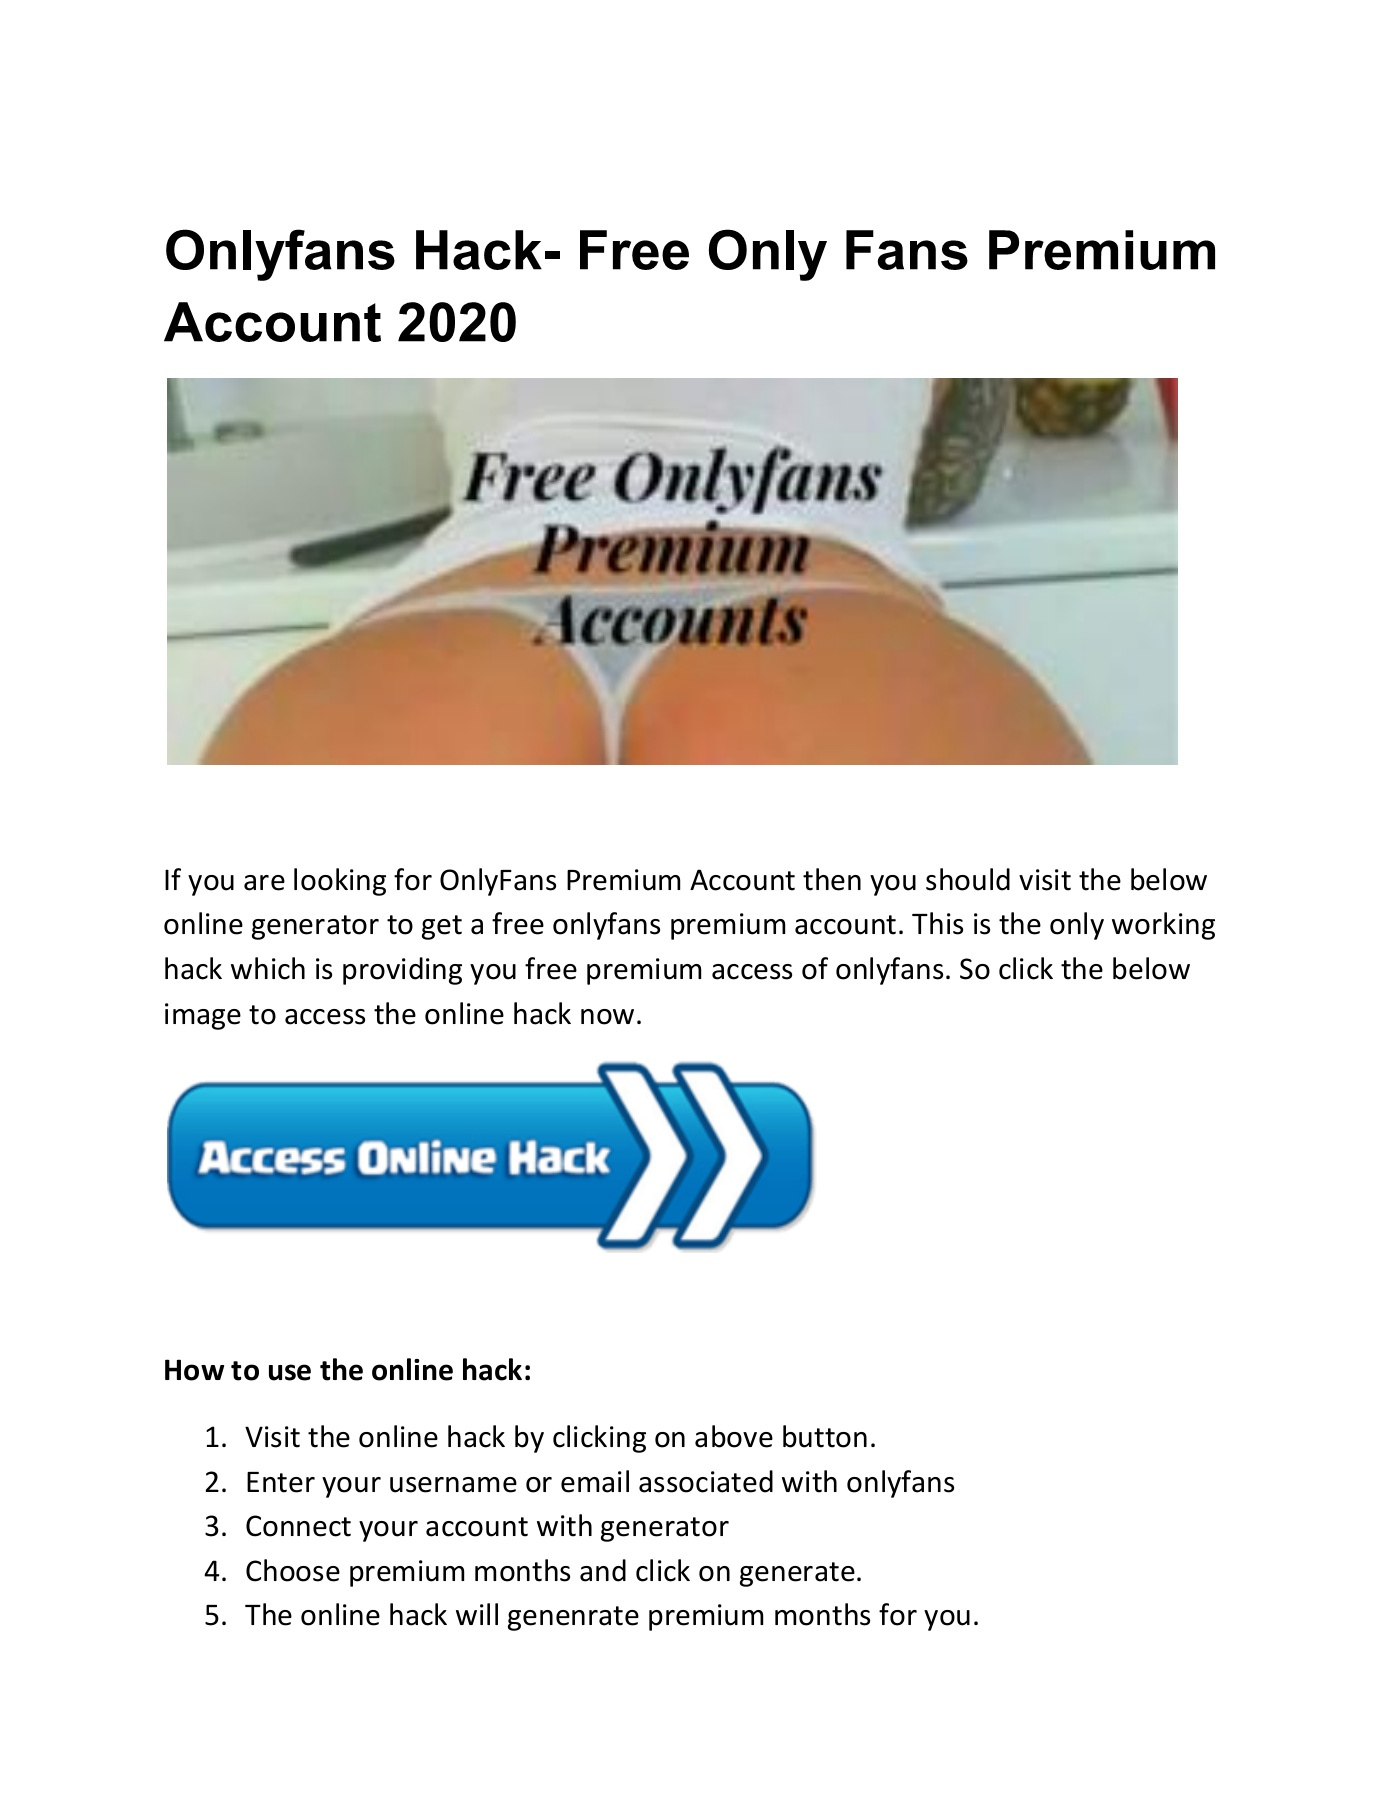 Onlyfans Hack 2020 Free Premium Accounts Flip Ebook Pages 1 12 Anyflip Anyflip